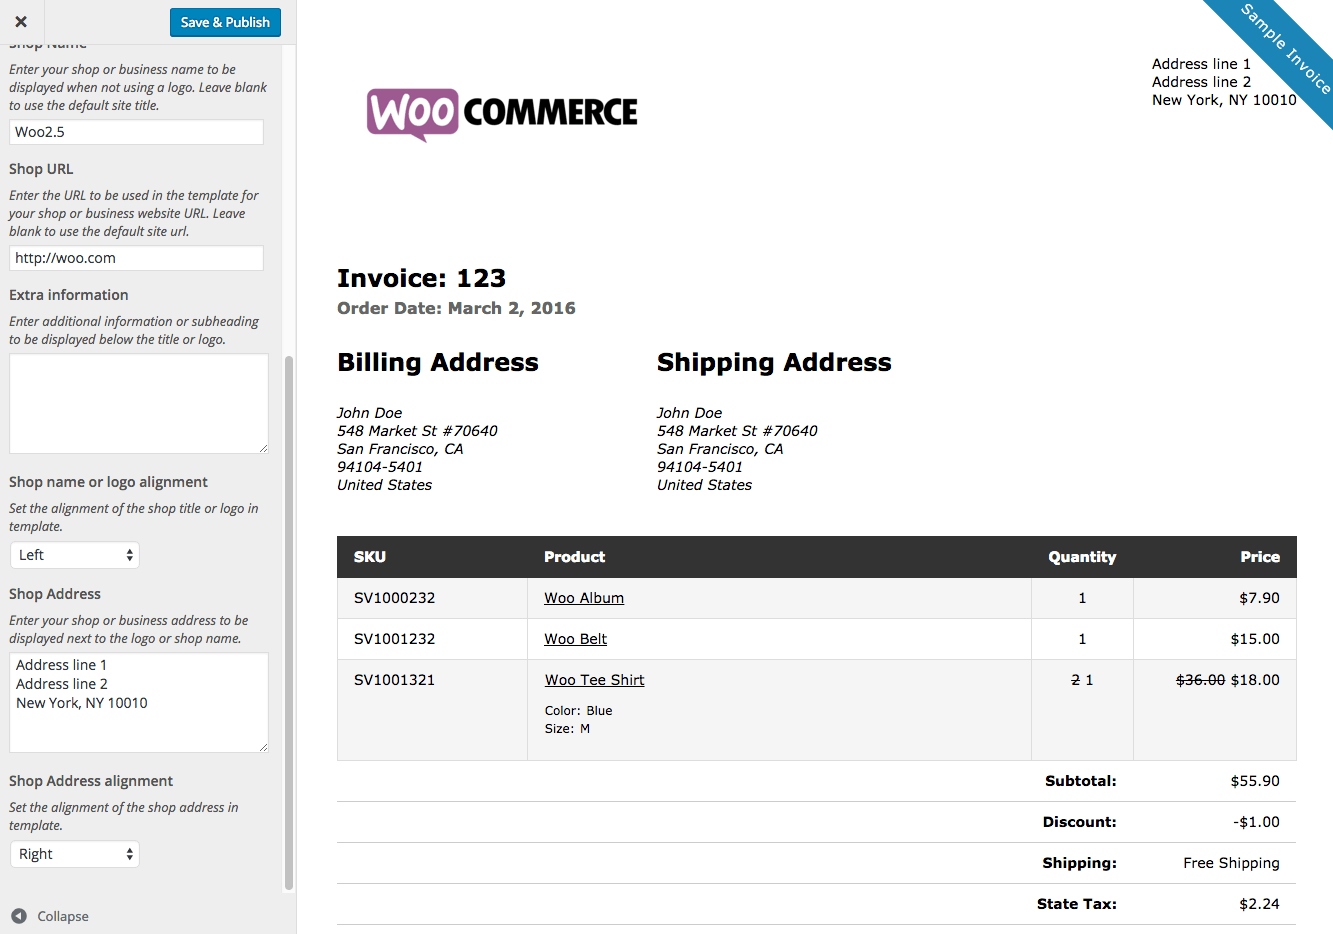 Usdgus  Terrific Woocommerce Print Invoices Amp Packing Lists  Woocommerce Docs With Handsome Woocommerce Print Invoices  Packing Lists Customizer With Enchanting Apcoa Vat Receipt Also We Acknowledge Receipt Of Your Letter In Addition Charitable Receipts And Lic Of India Online Payment Receipt As Well As Template For Receipt Of Goods Additionally Examples Of Receipts For Payment From Docswoocommercecom With Usdgus  Handsome Woocommerce Print Invoices Amp Packing Lists  Woocommerce Docs With Enchanting Woocommerce Print Invoices  Packing Lists Customizer And Terrific Apcoa Vat Receipt Also We Acknowledge Receipt Of Your Letter In Addition Charitable Receipts From Docswoocommercecom